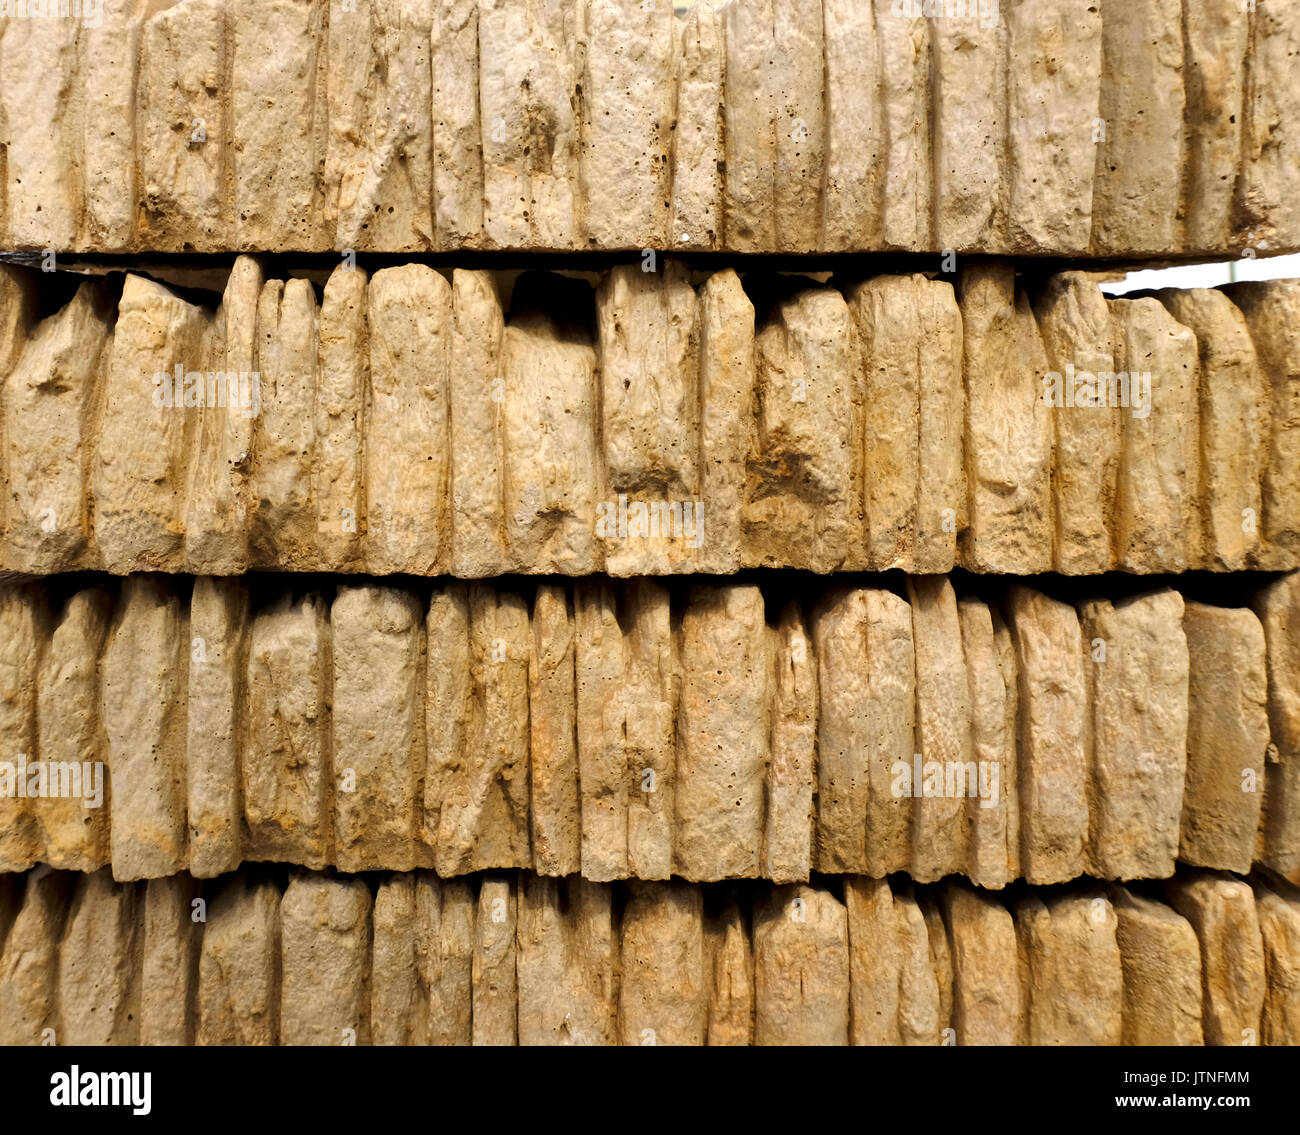 Stacks of gold coloured walling or coping stone for finishing off the top of a wall - Stock Image